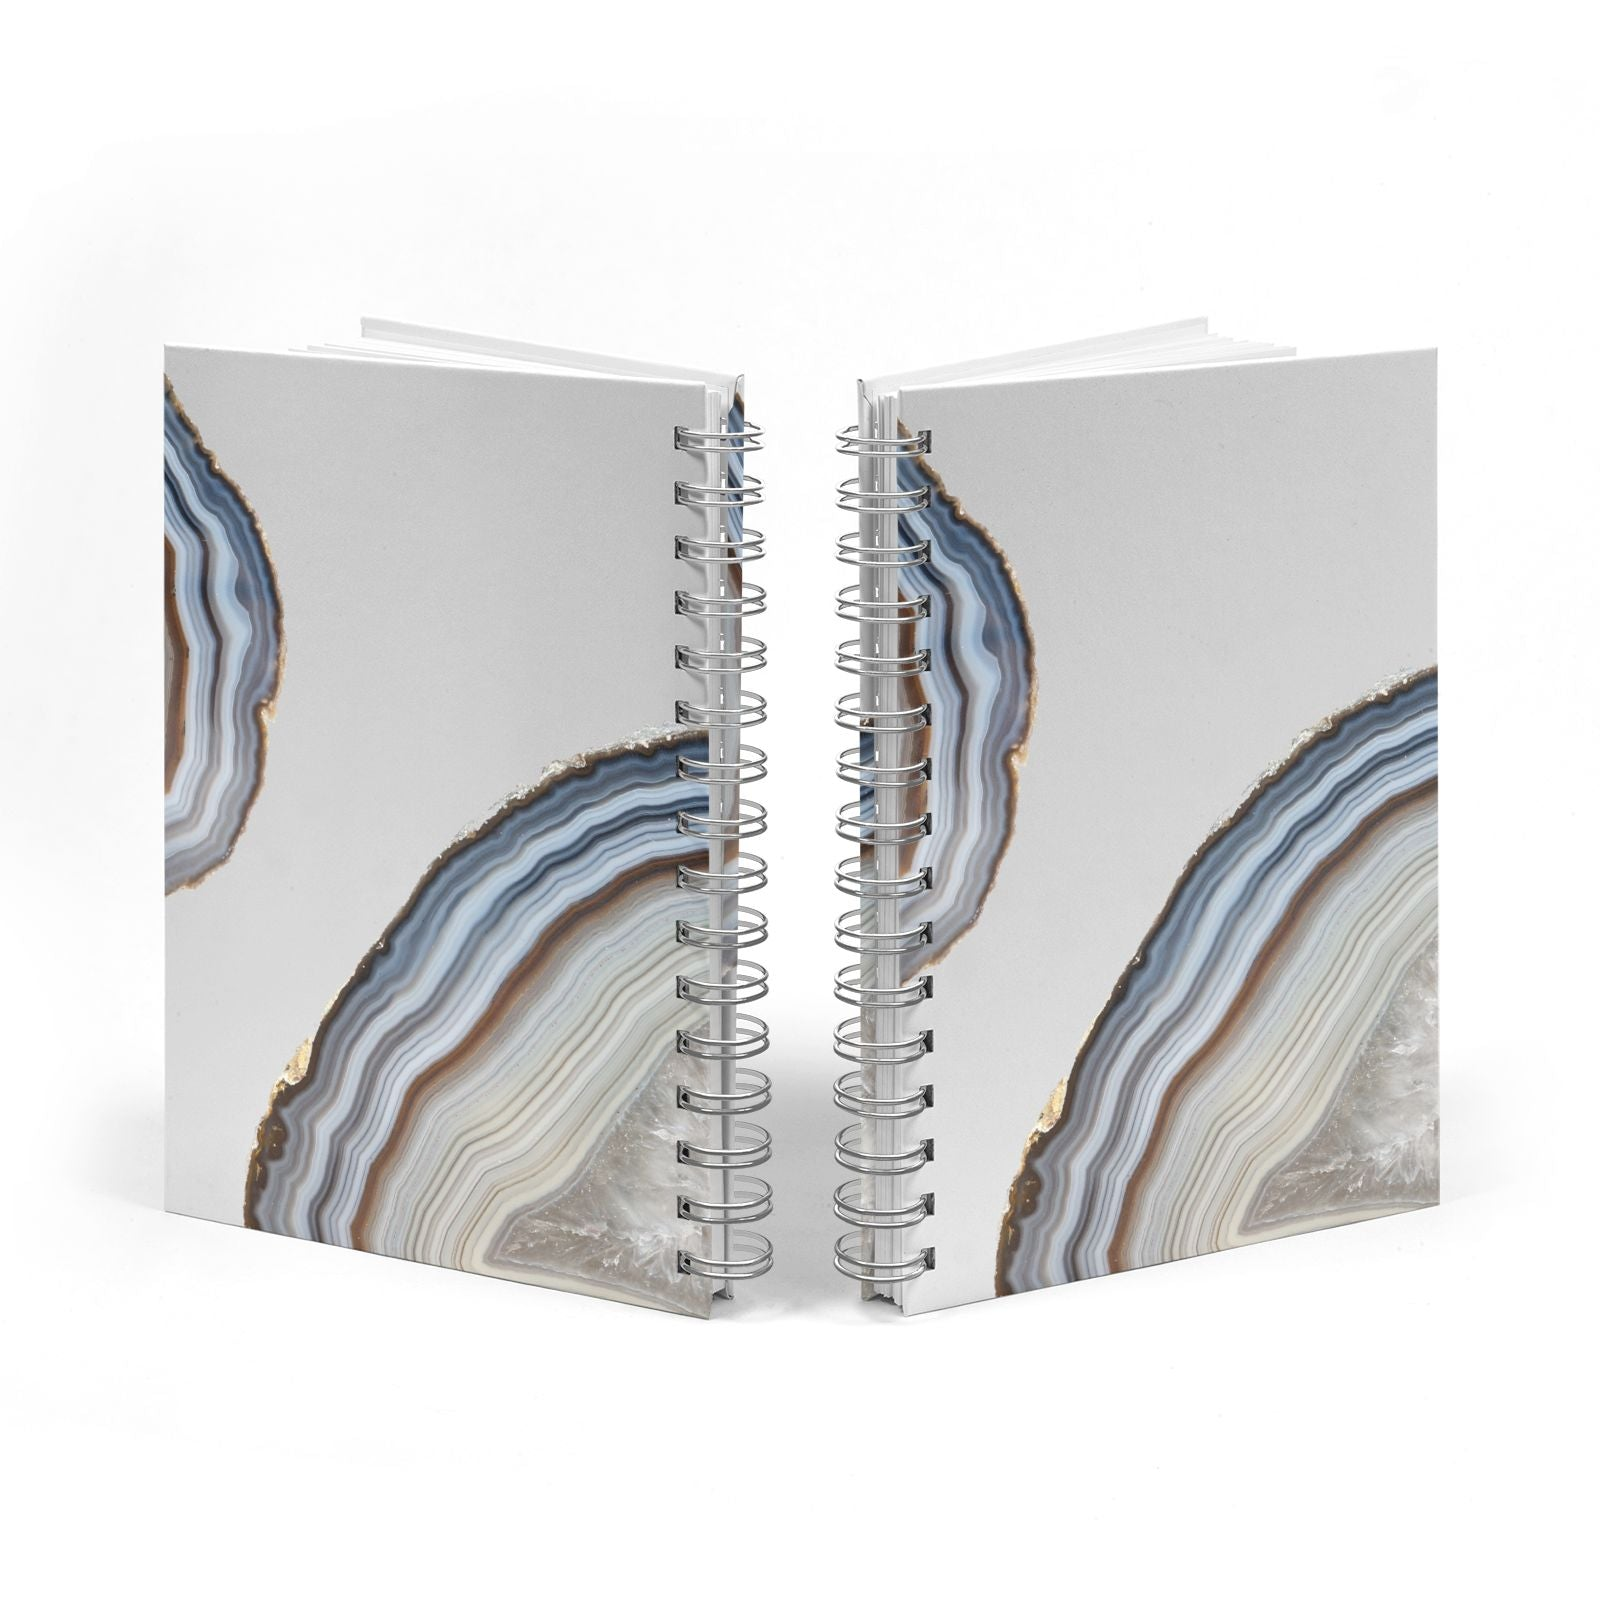 Agate Blue Grey Notebook with Silver Coil Spine View